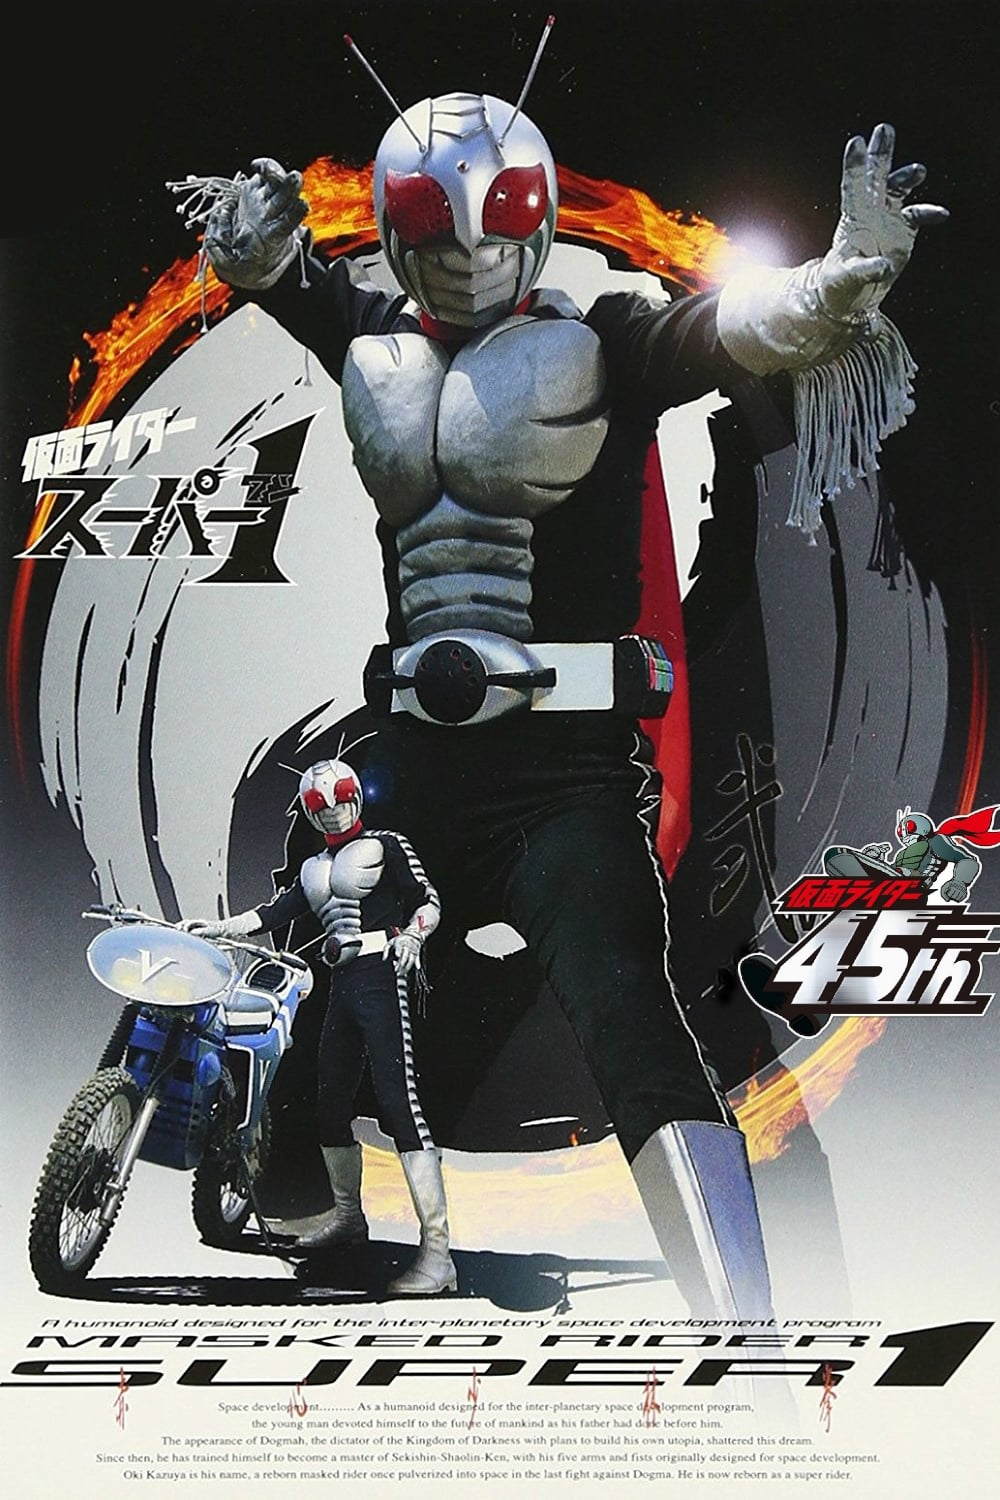 Kamen Rider - Season 21 Episode 30 : King, Panda, Memory of Flame Season 7